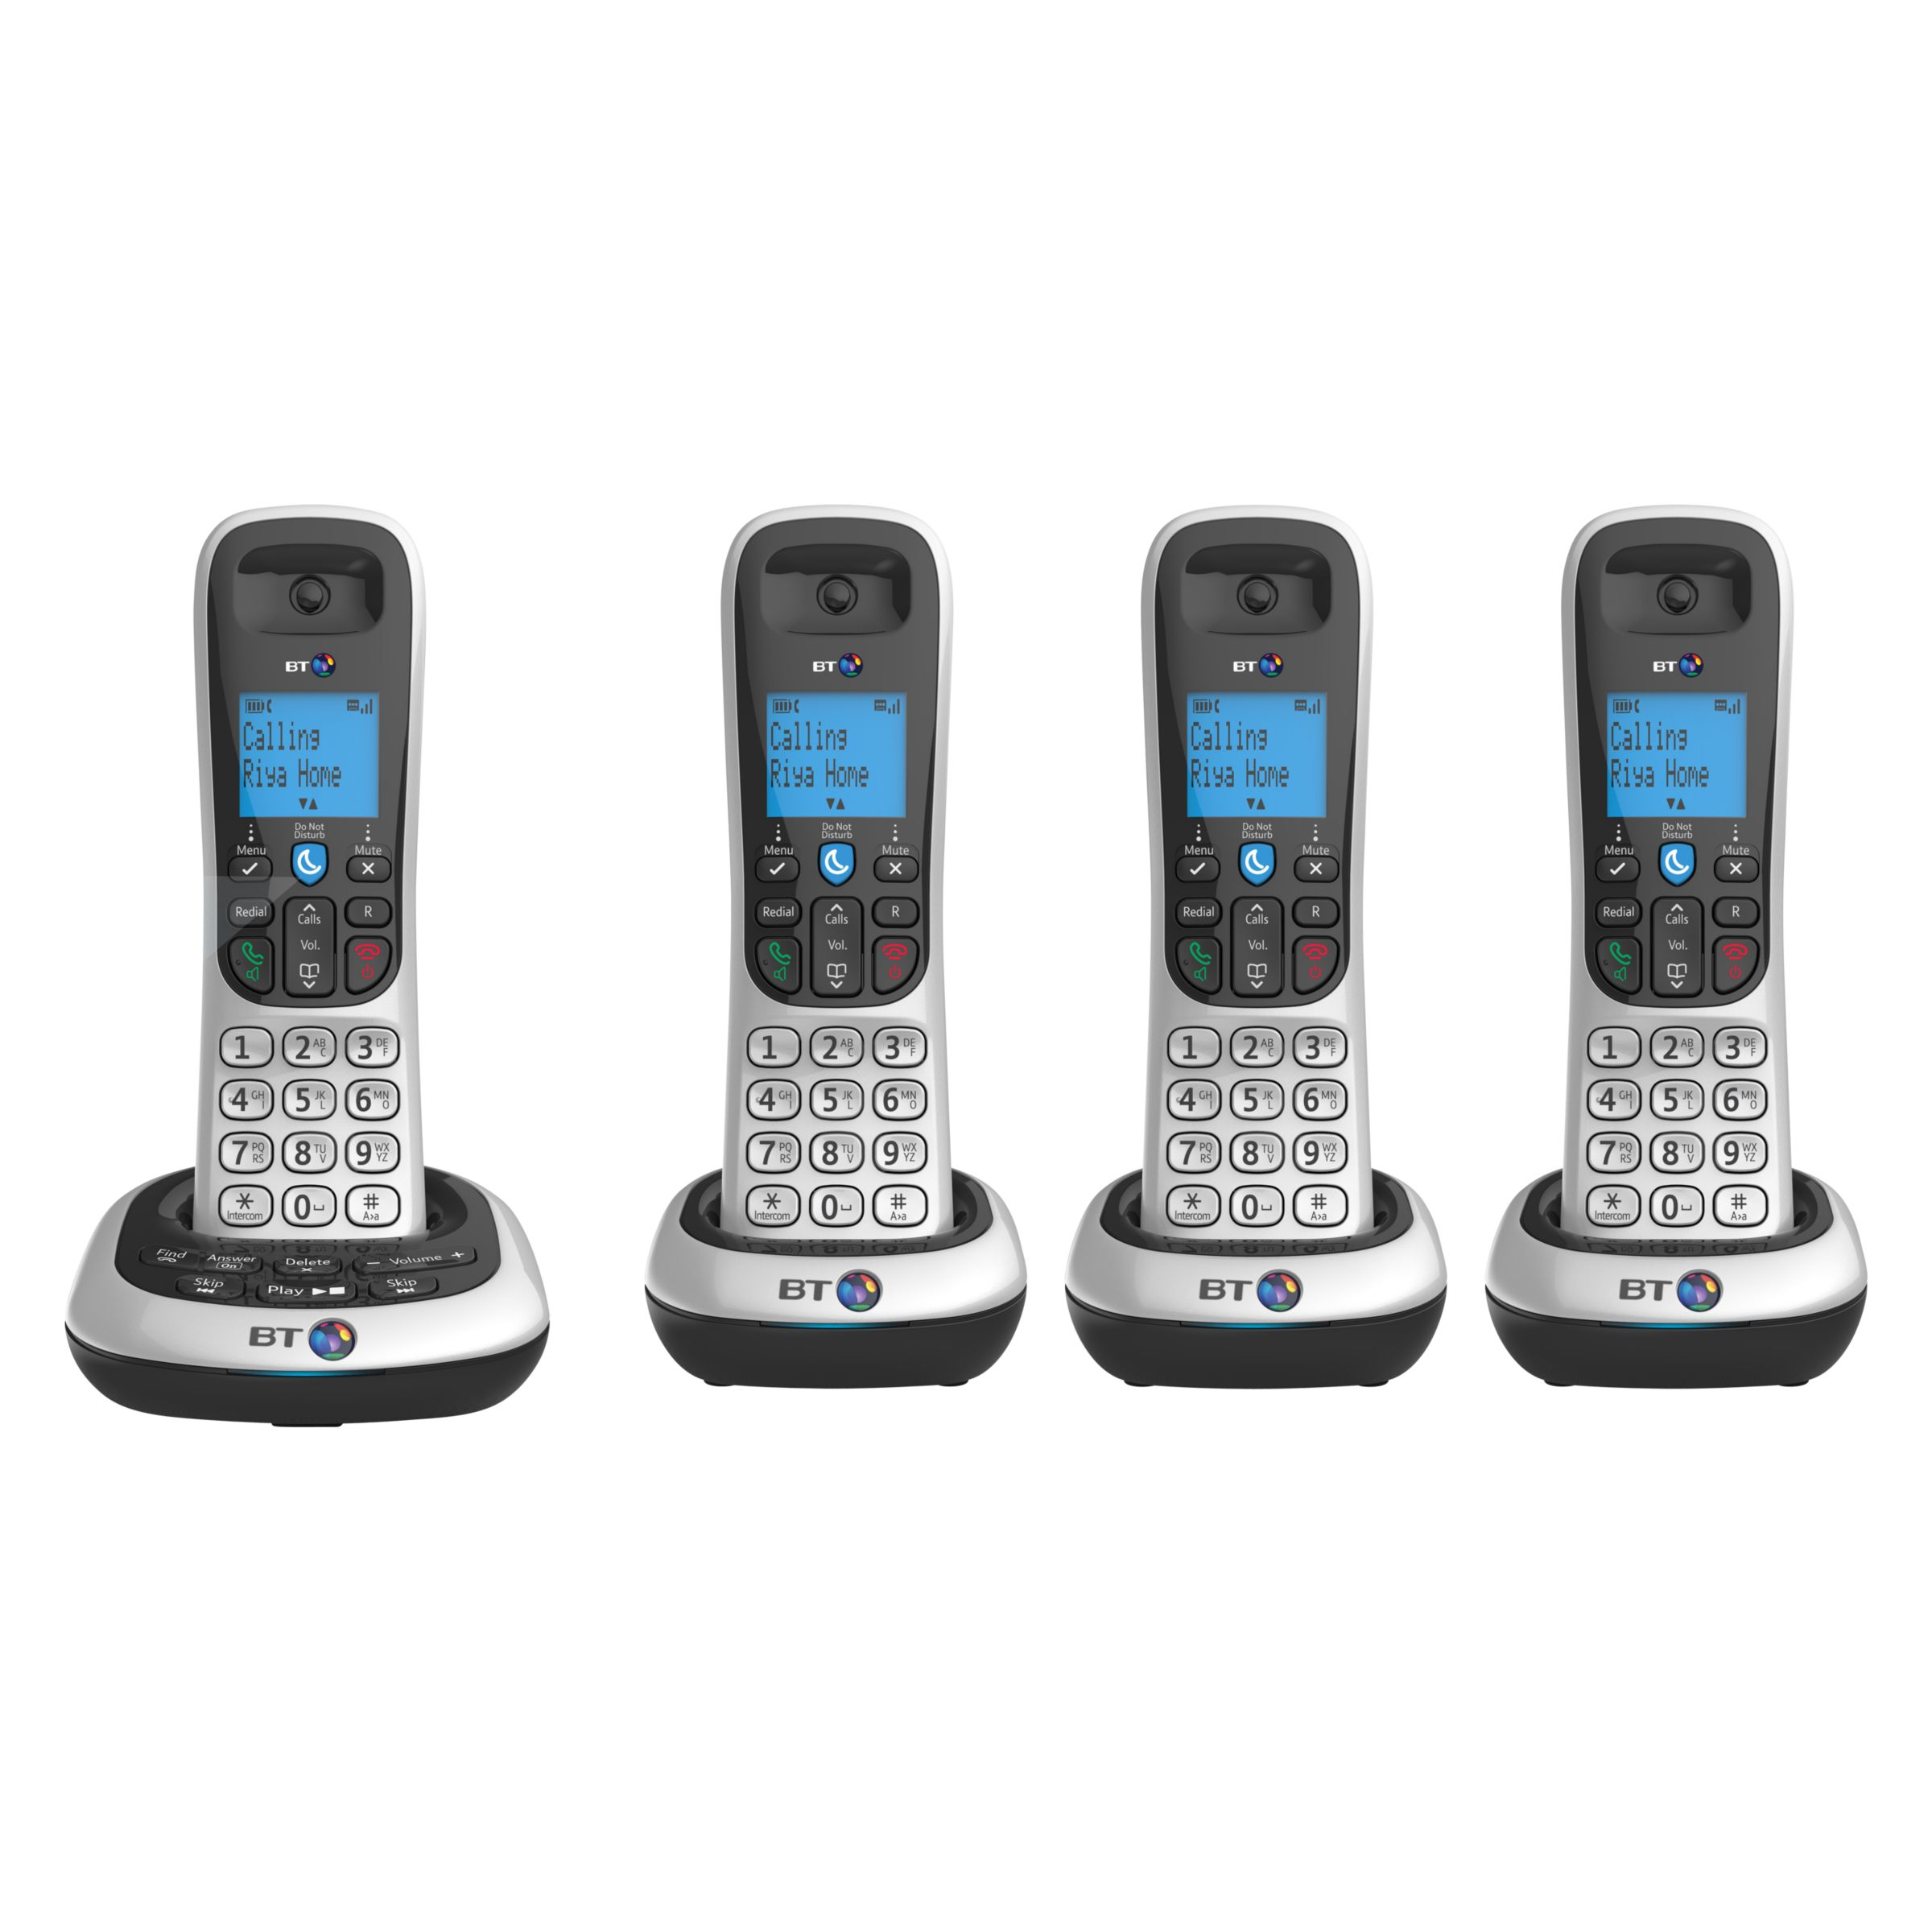 BT BT 2700 Digital Cordless Phone with Answering Machine, Quad DECT